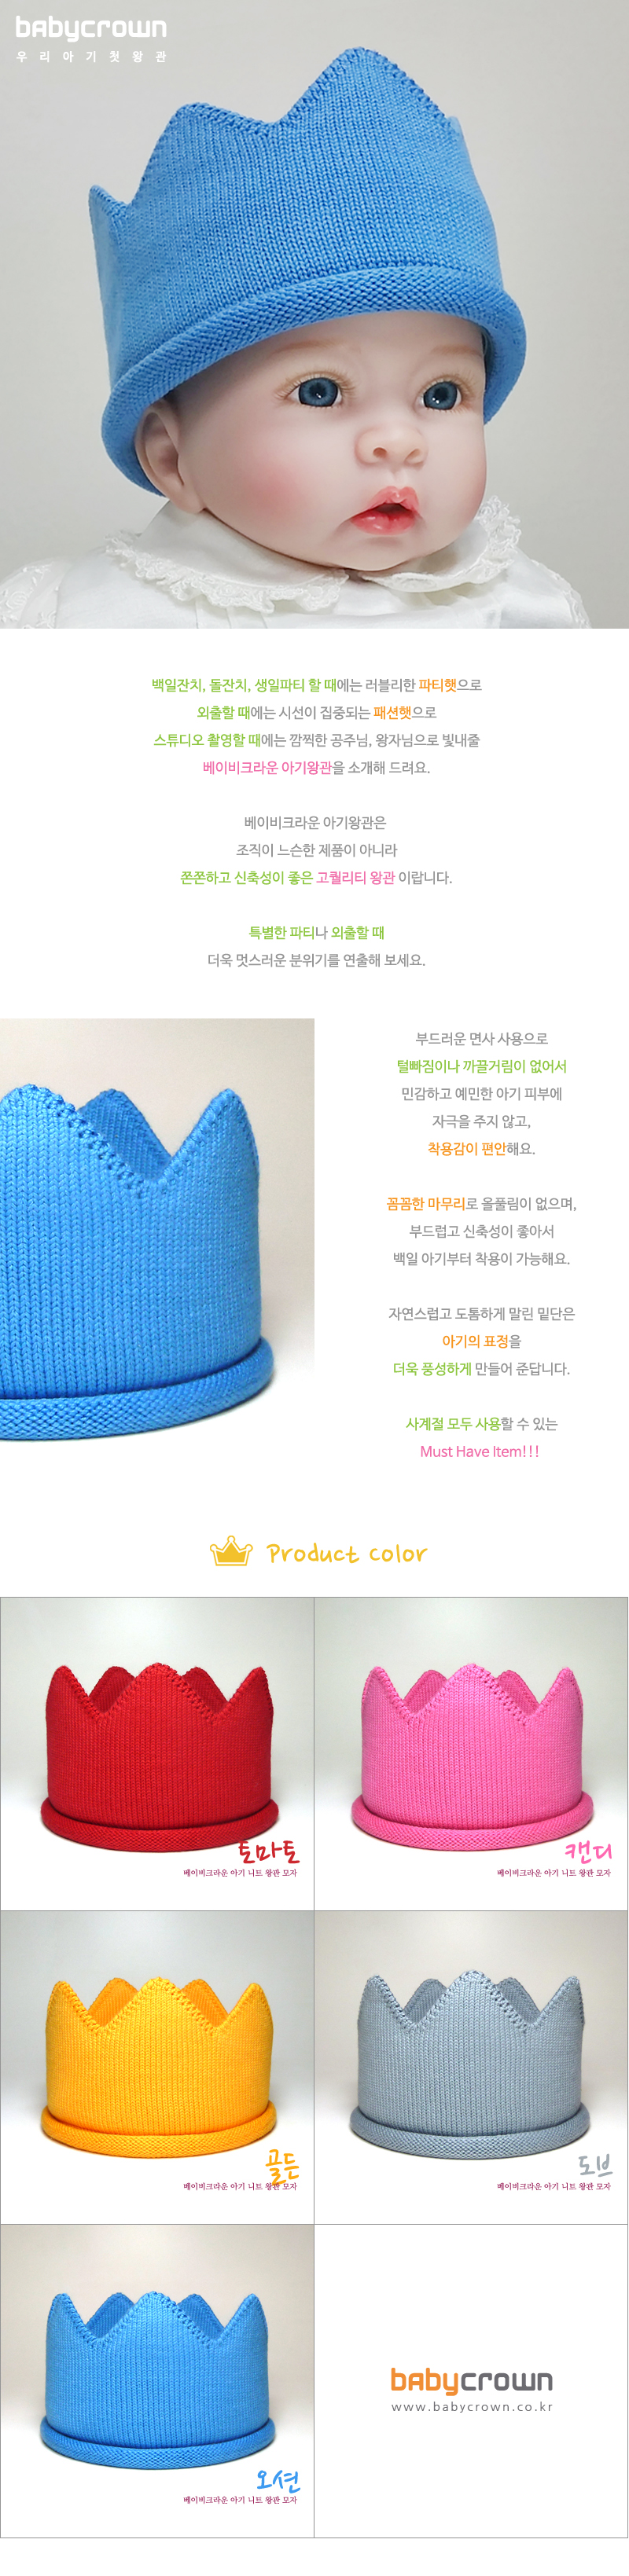 [ Babycrown ] [Baby Crown] baby knit crown cutie (ocean)